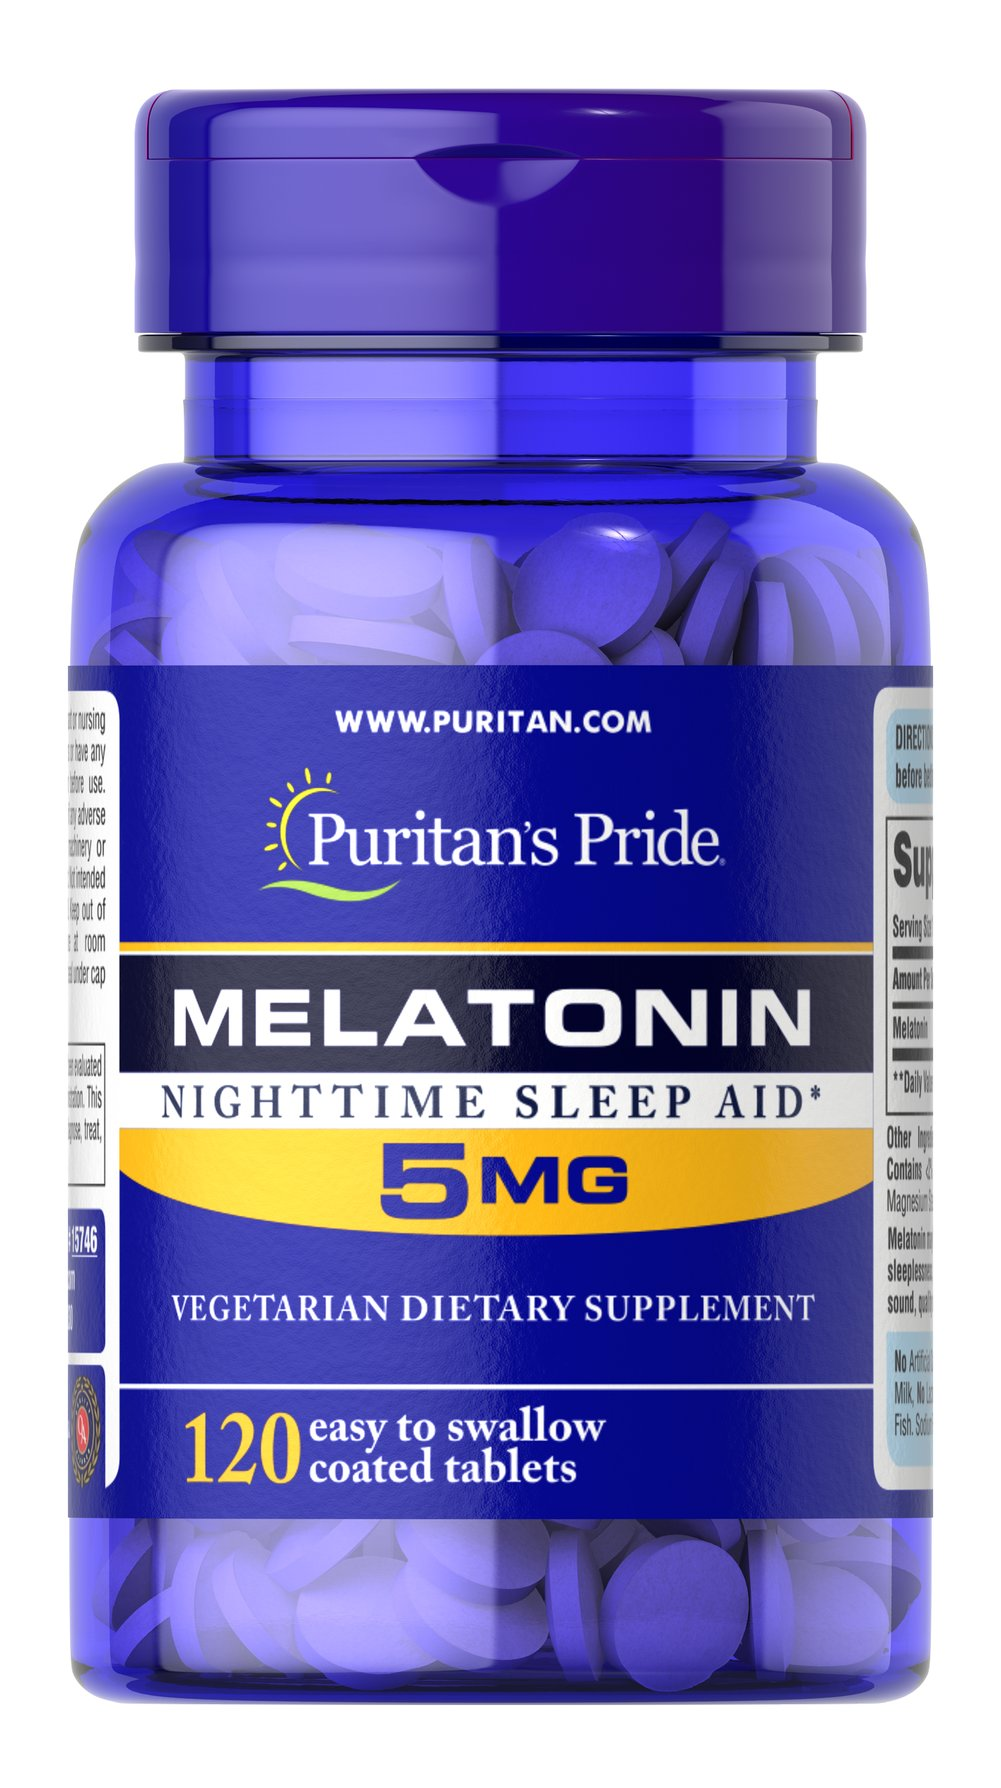 Melatonin 5 mg <p>Sometimes it's hard to unwind after a long day. That's when it's time for Melatonin, a hormone naturally produced in the body that is closely involved in the natural sleep cycle.** It's a terrific choice if you experience occasional sleeplessness or jet lag, or if you want to improve your quality of rest.**  Melatonin helps you fall asleep quickly and stay asleep longer**<br /></p> 120 Tablets 5 mg $12.99